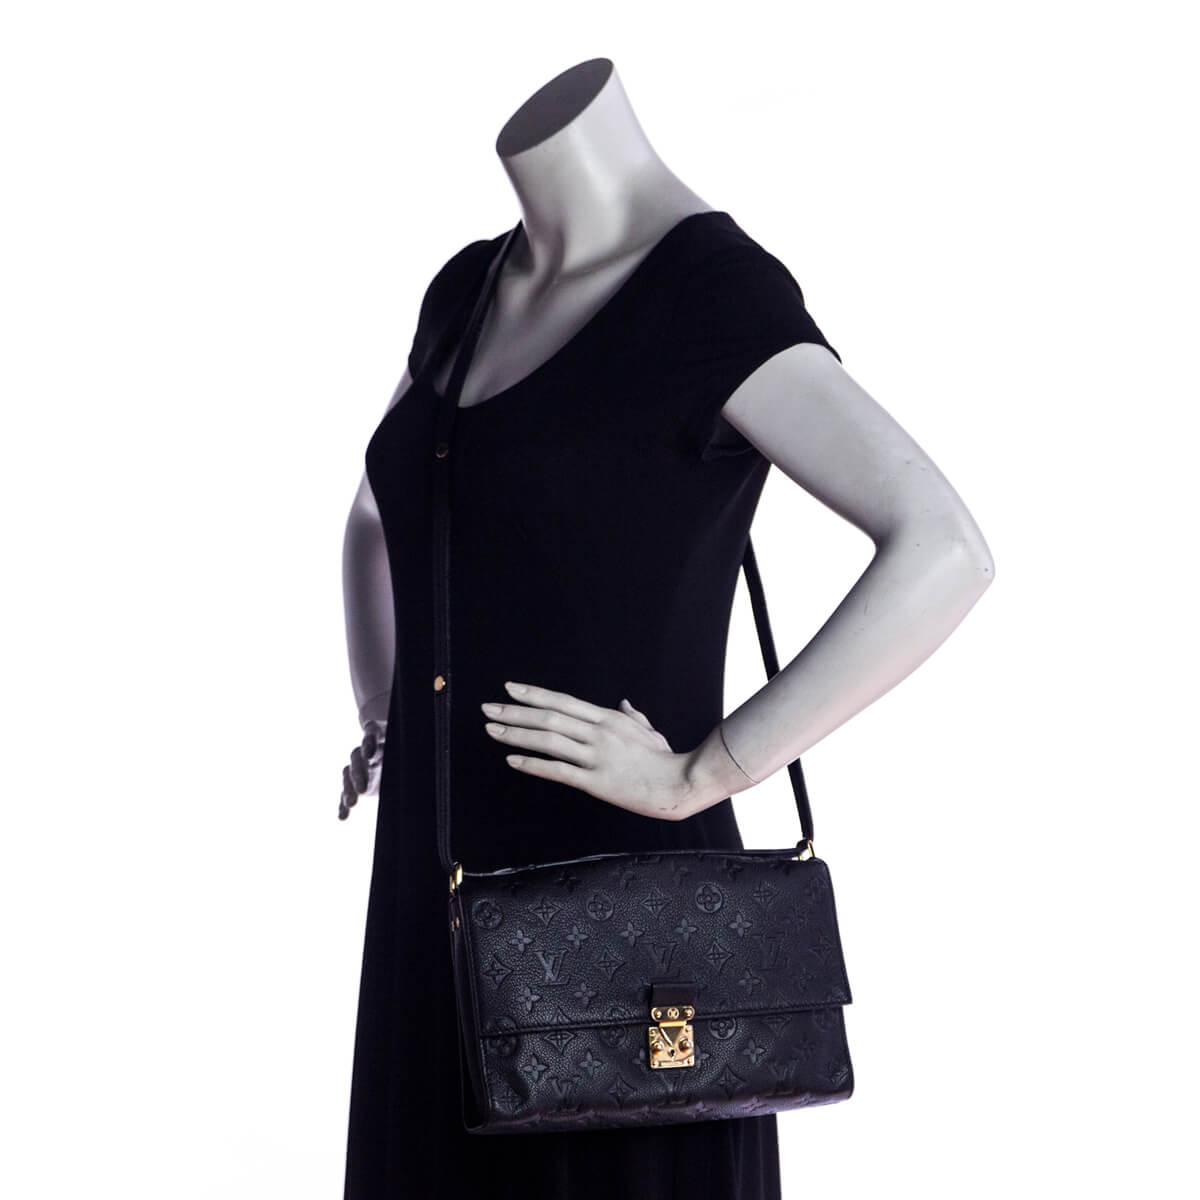 ... Louis Vuitton Black Empreinte Fascinante Bag - LOVE that BAG - Preowned  Authentic Designer Handbags a56429da36891